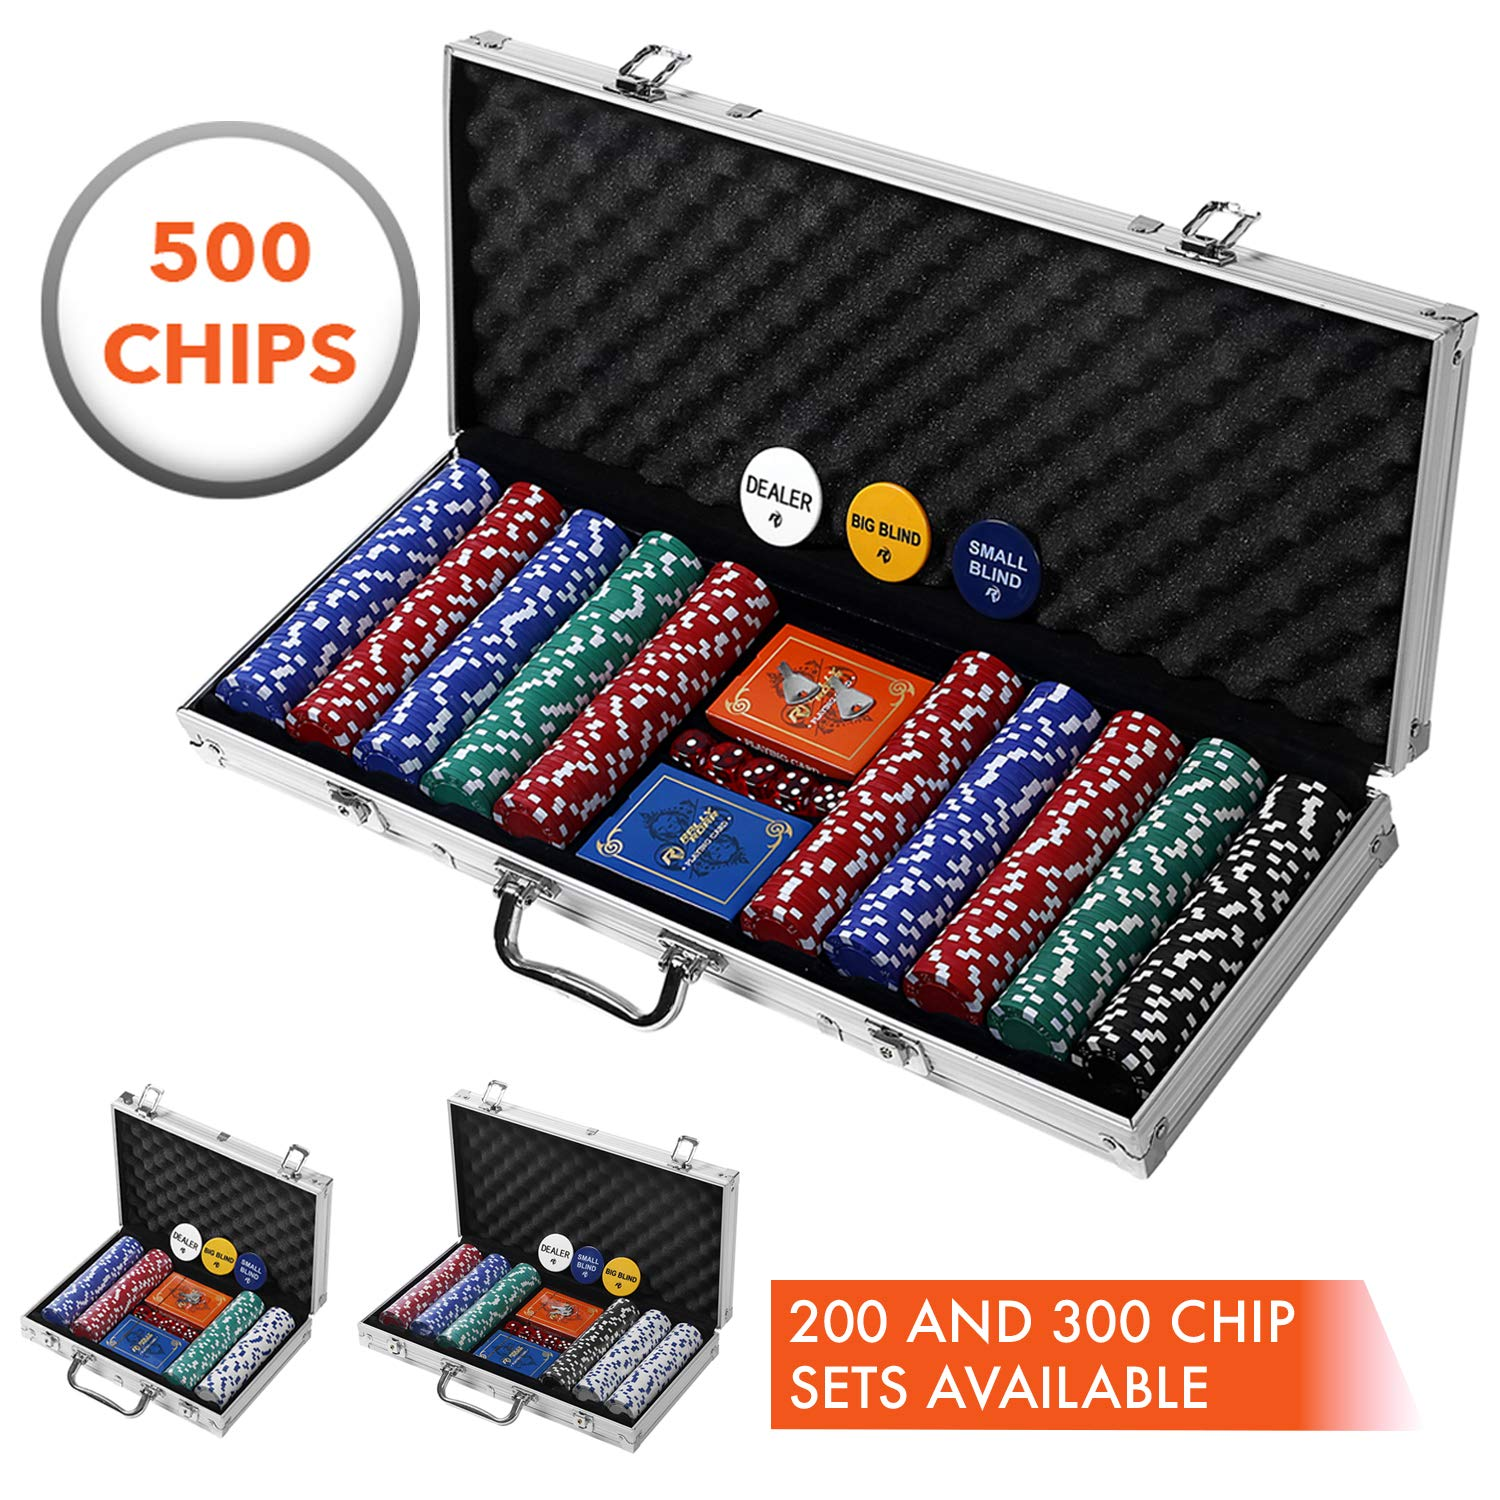 Professional 500 Chips (11.5g) Poker Set with Case by Rally & Roar - 3 OPTIONS - Complete Poker Playing Game Sets with Casino Style Chips, Cards, Dice, Aluminum Color Case & Keys by Rally and Roar